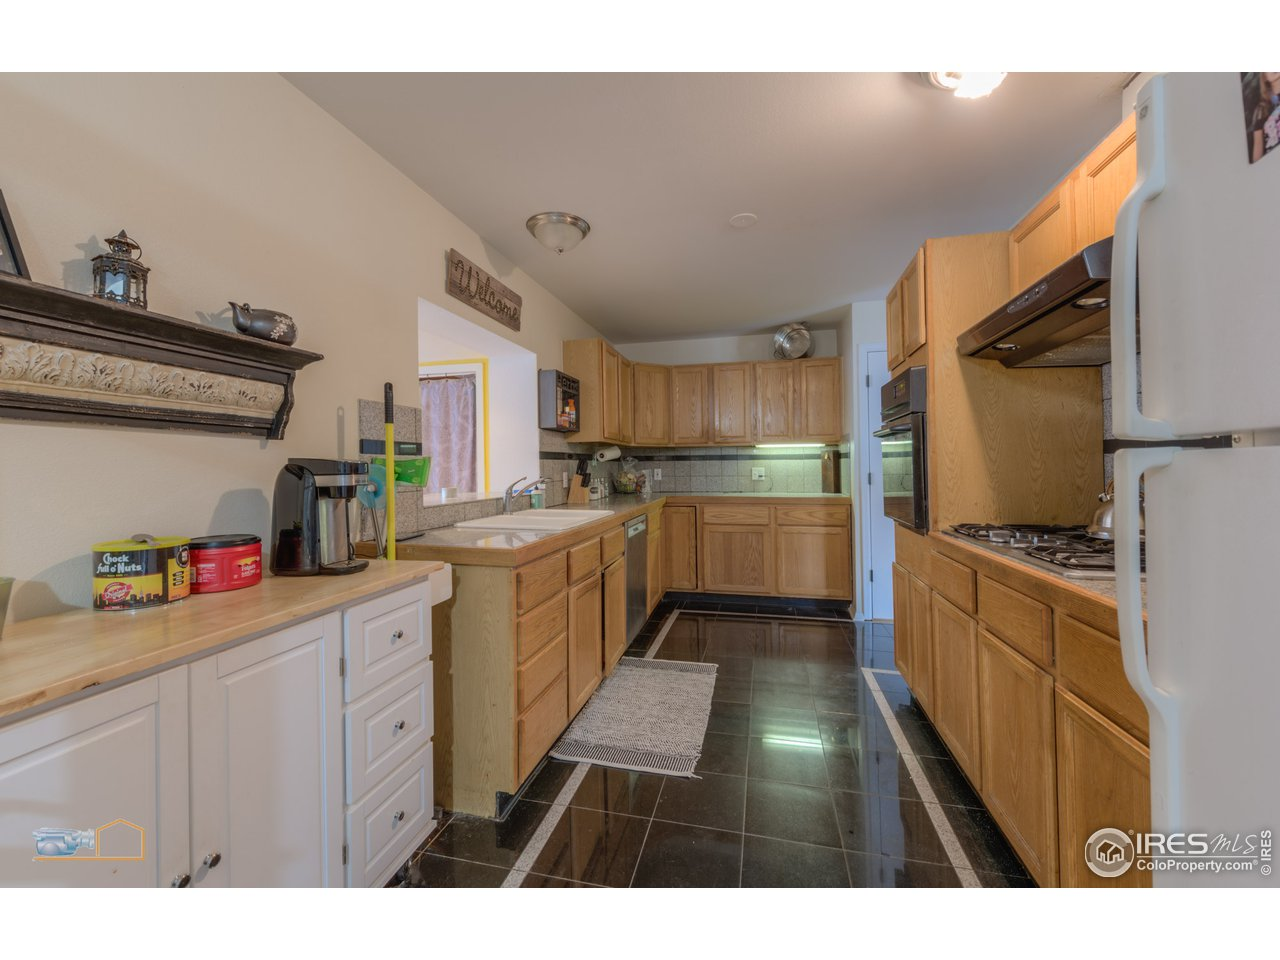 Kitchen with maple cabinetry